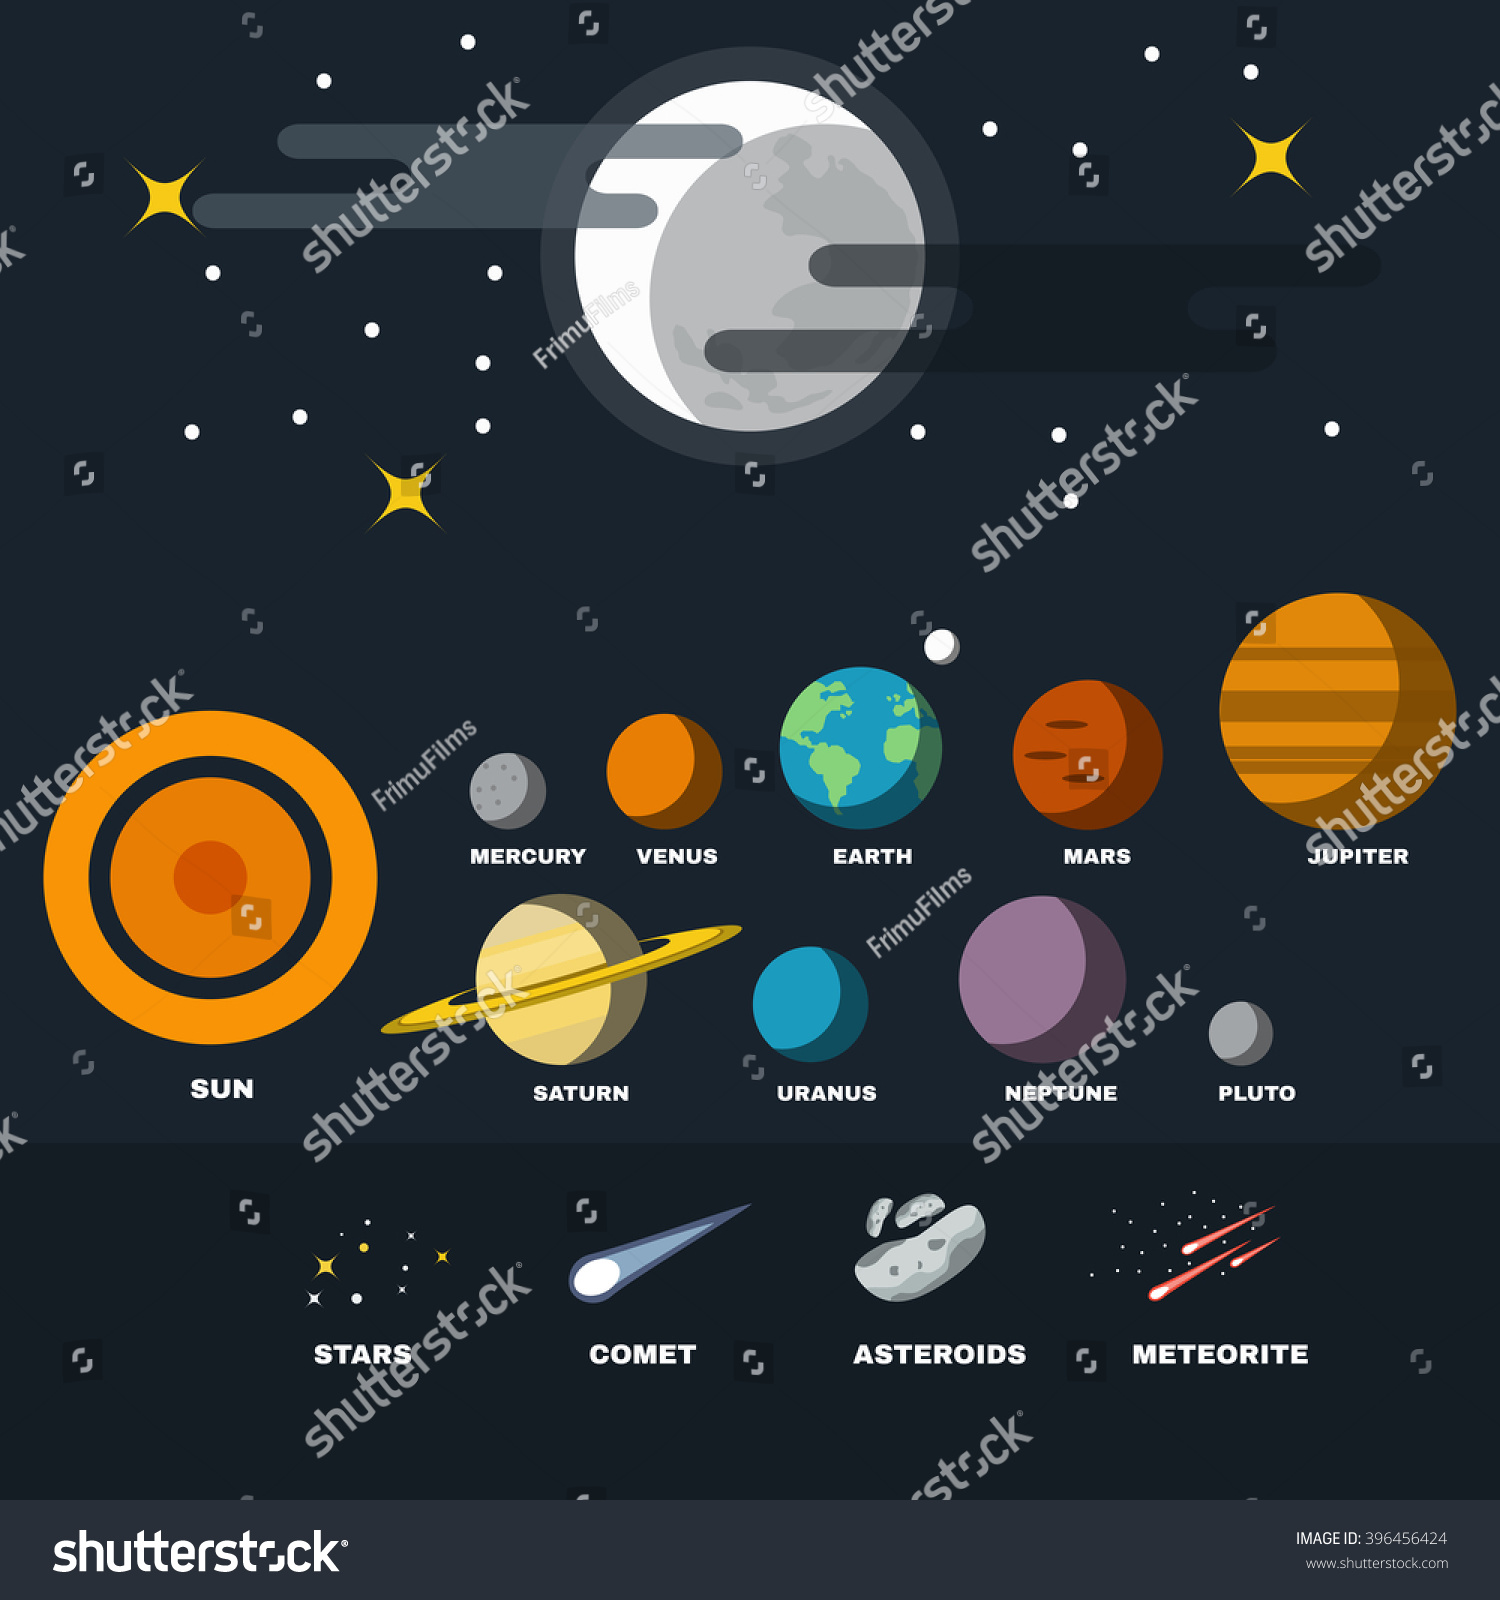 asteroids planets space astronomy galaxies - photo #23